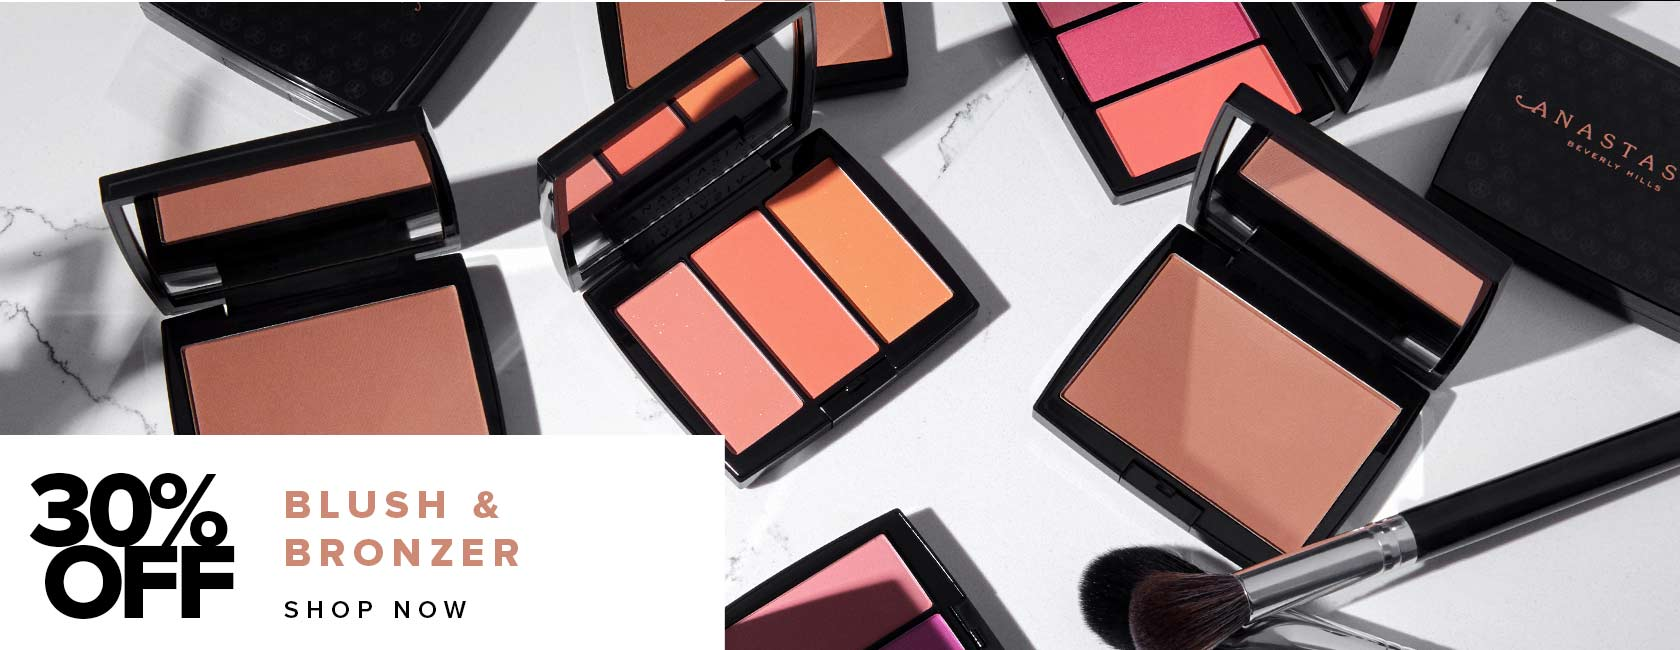 30% off Blush and Bronzer, Shop Now